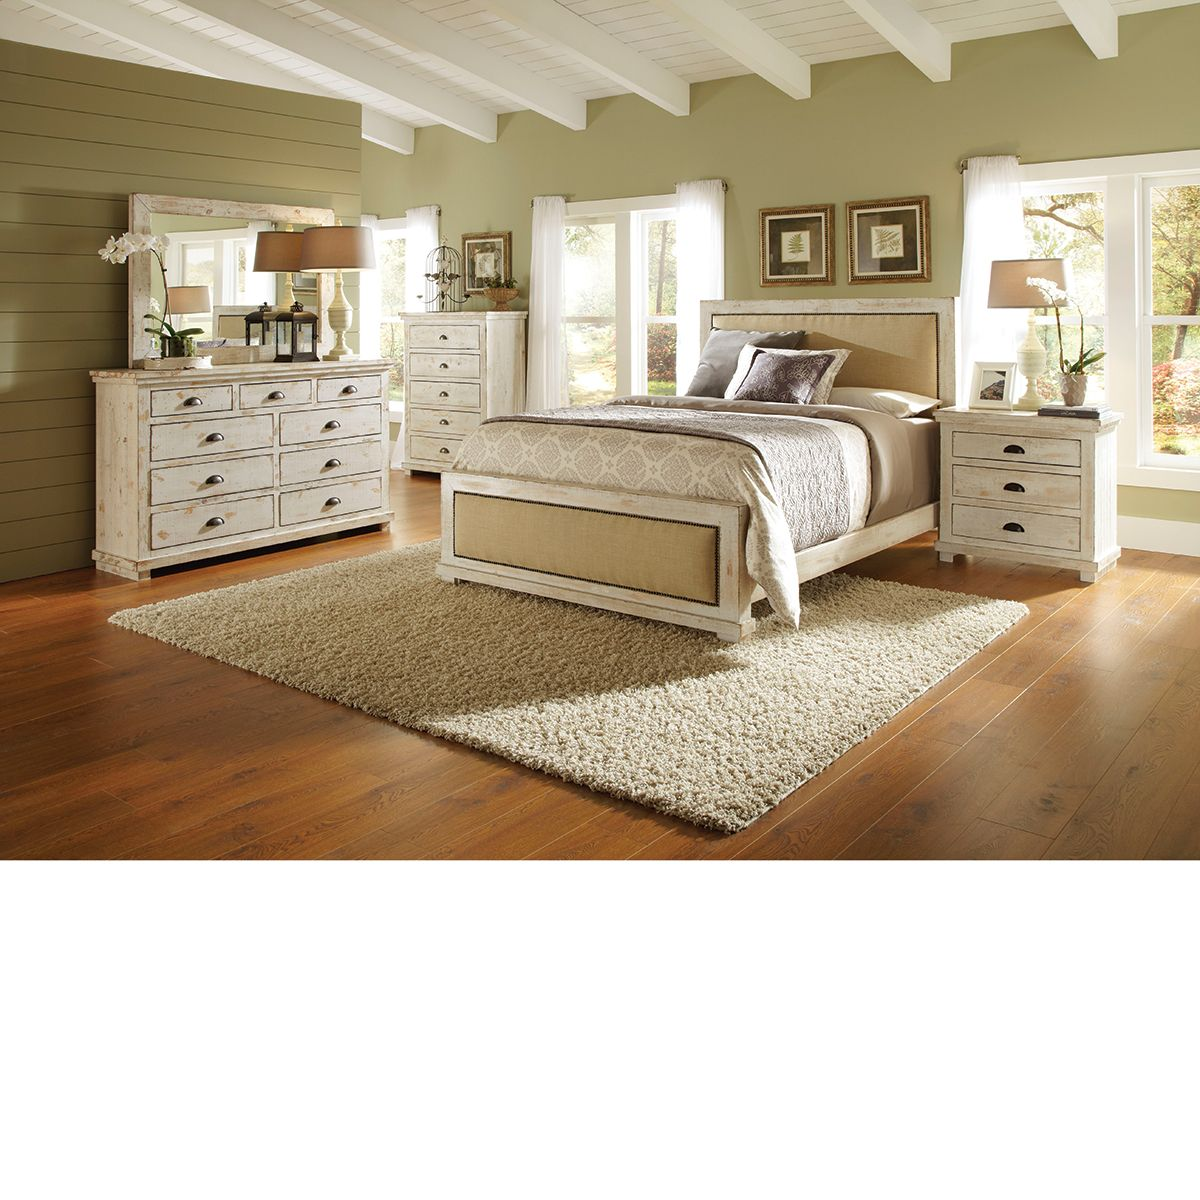 Bedroom Sets The Dump the dump furniture - willow white | master | pinterest | dump